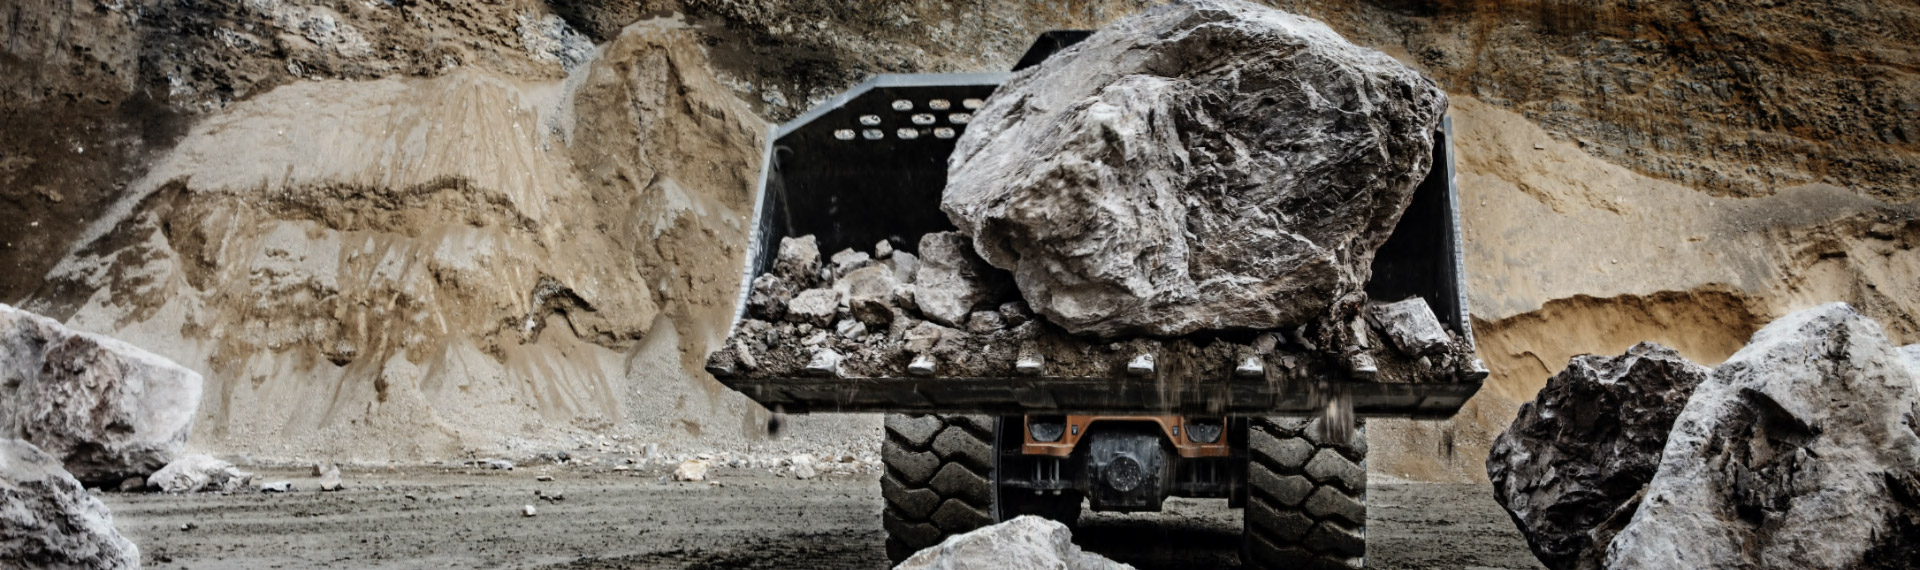 A wheel loader made in Hardox® steel in a quarry carrying a gigantic rock